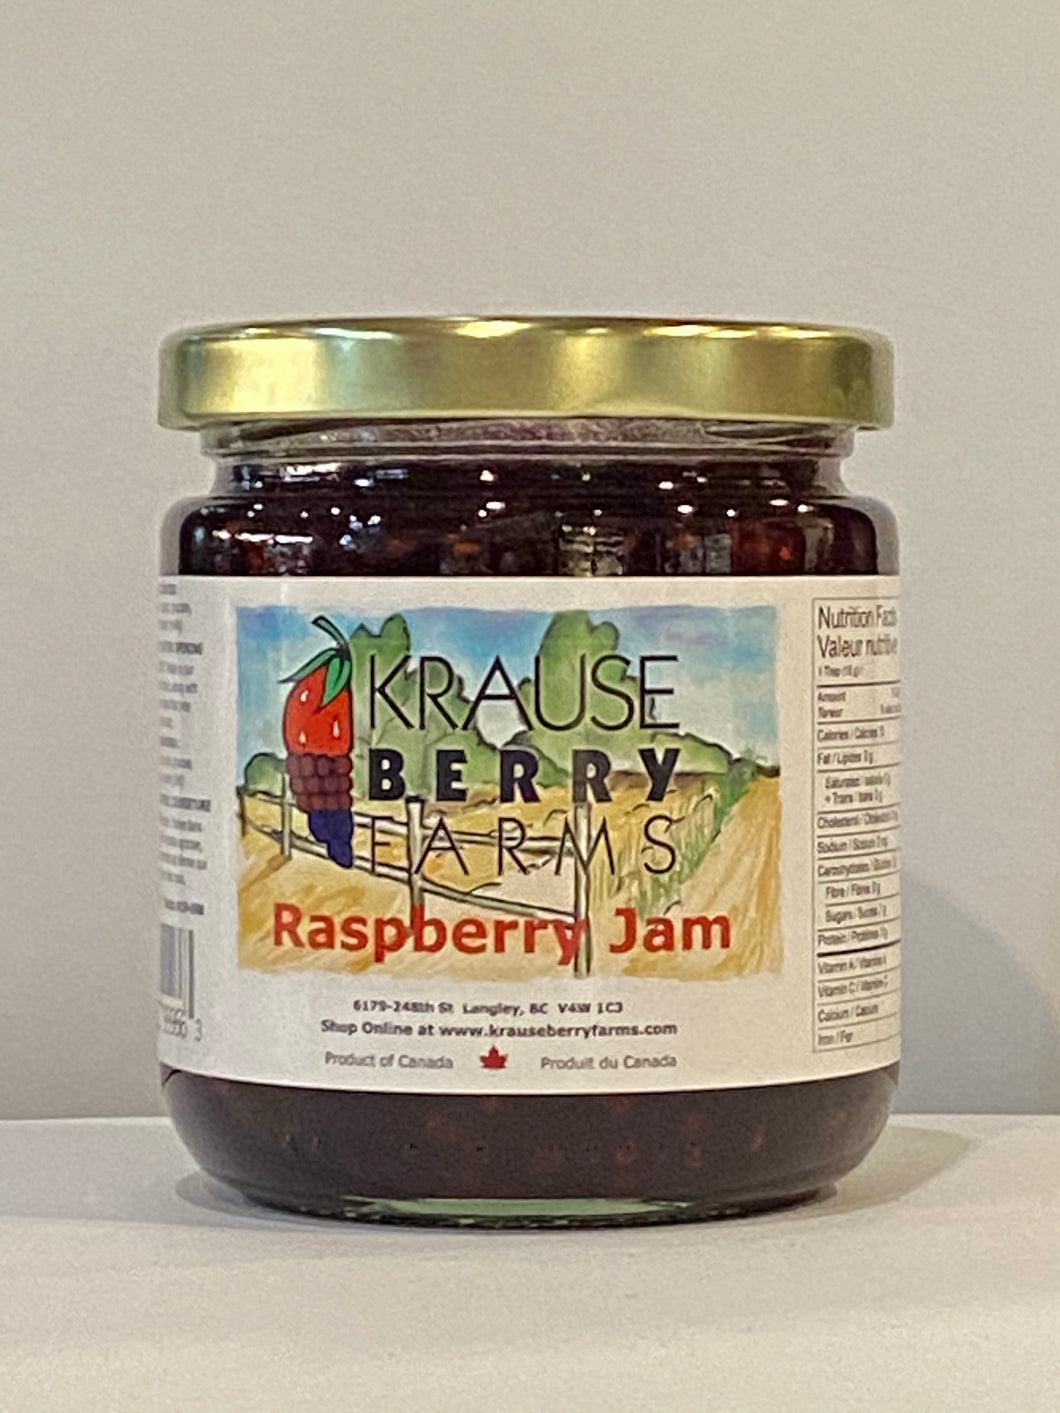 Krause Raspberry Jam